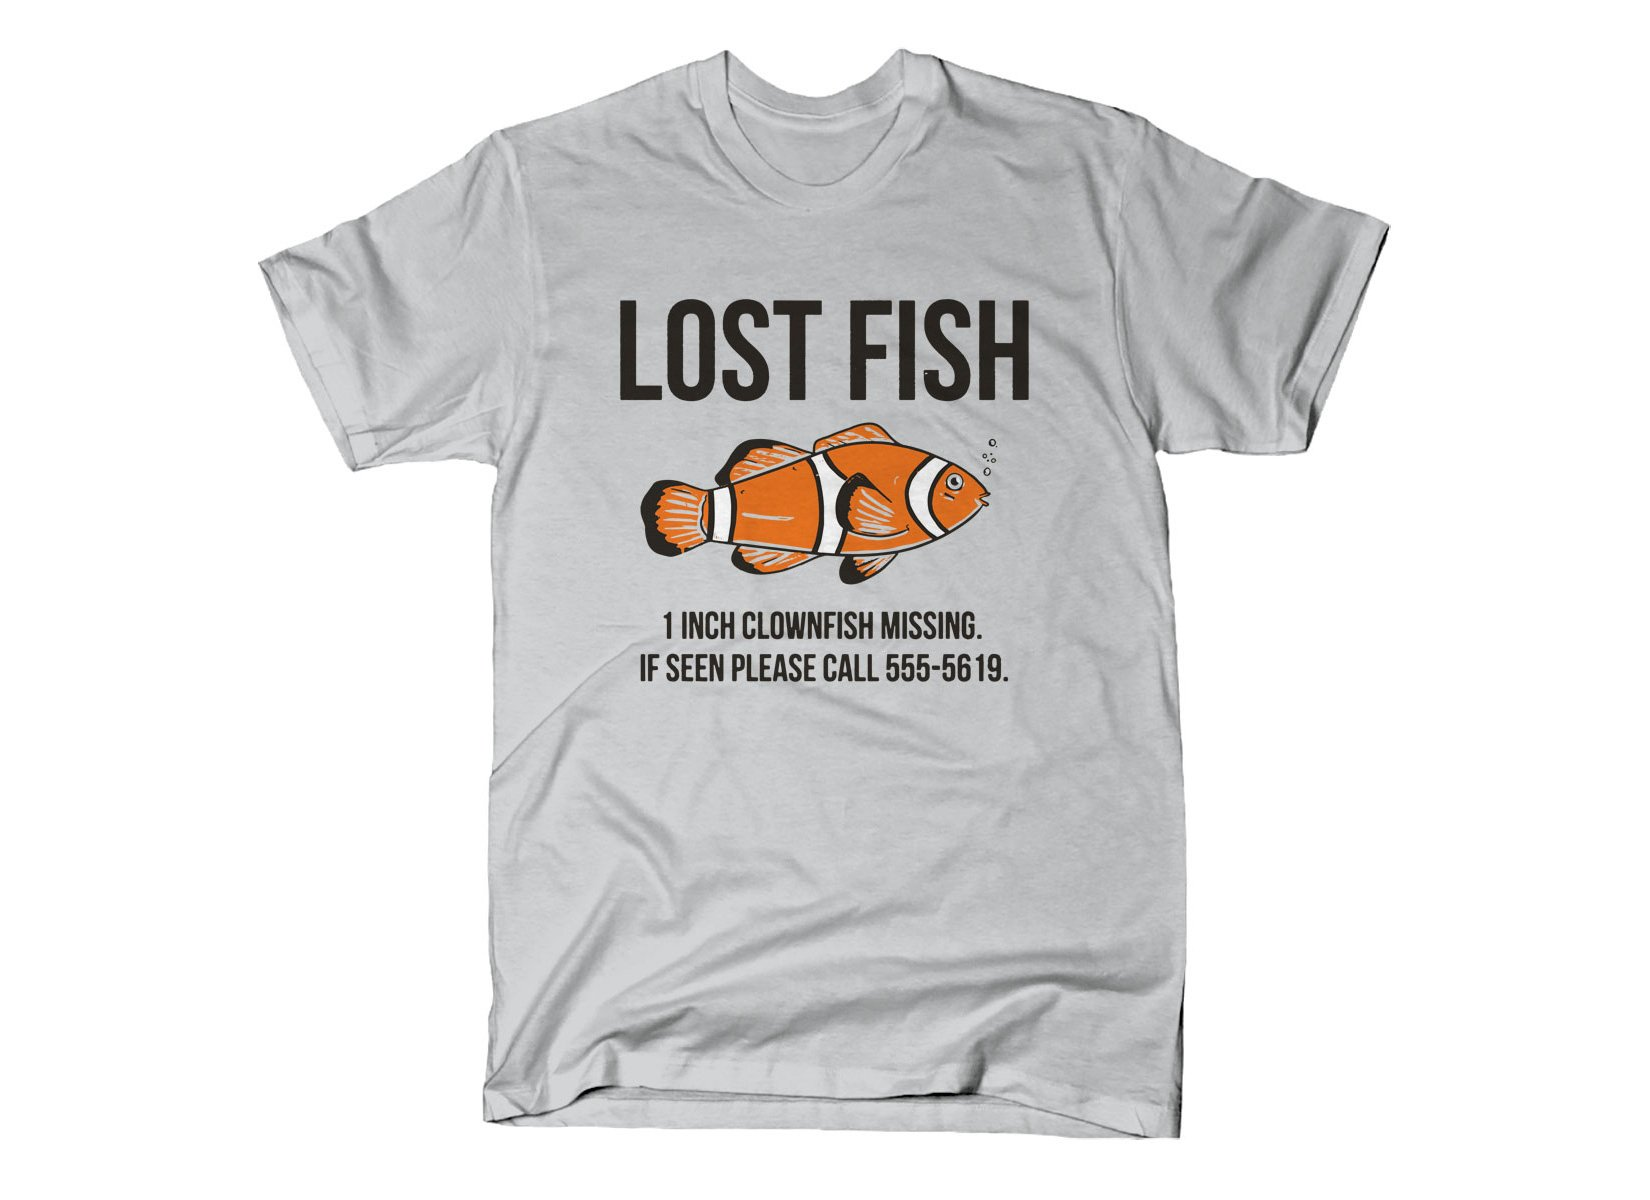 Lost Fish on Mens T-Shirt